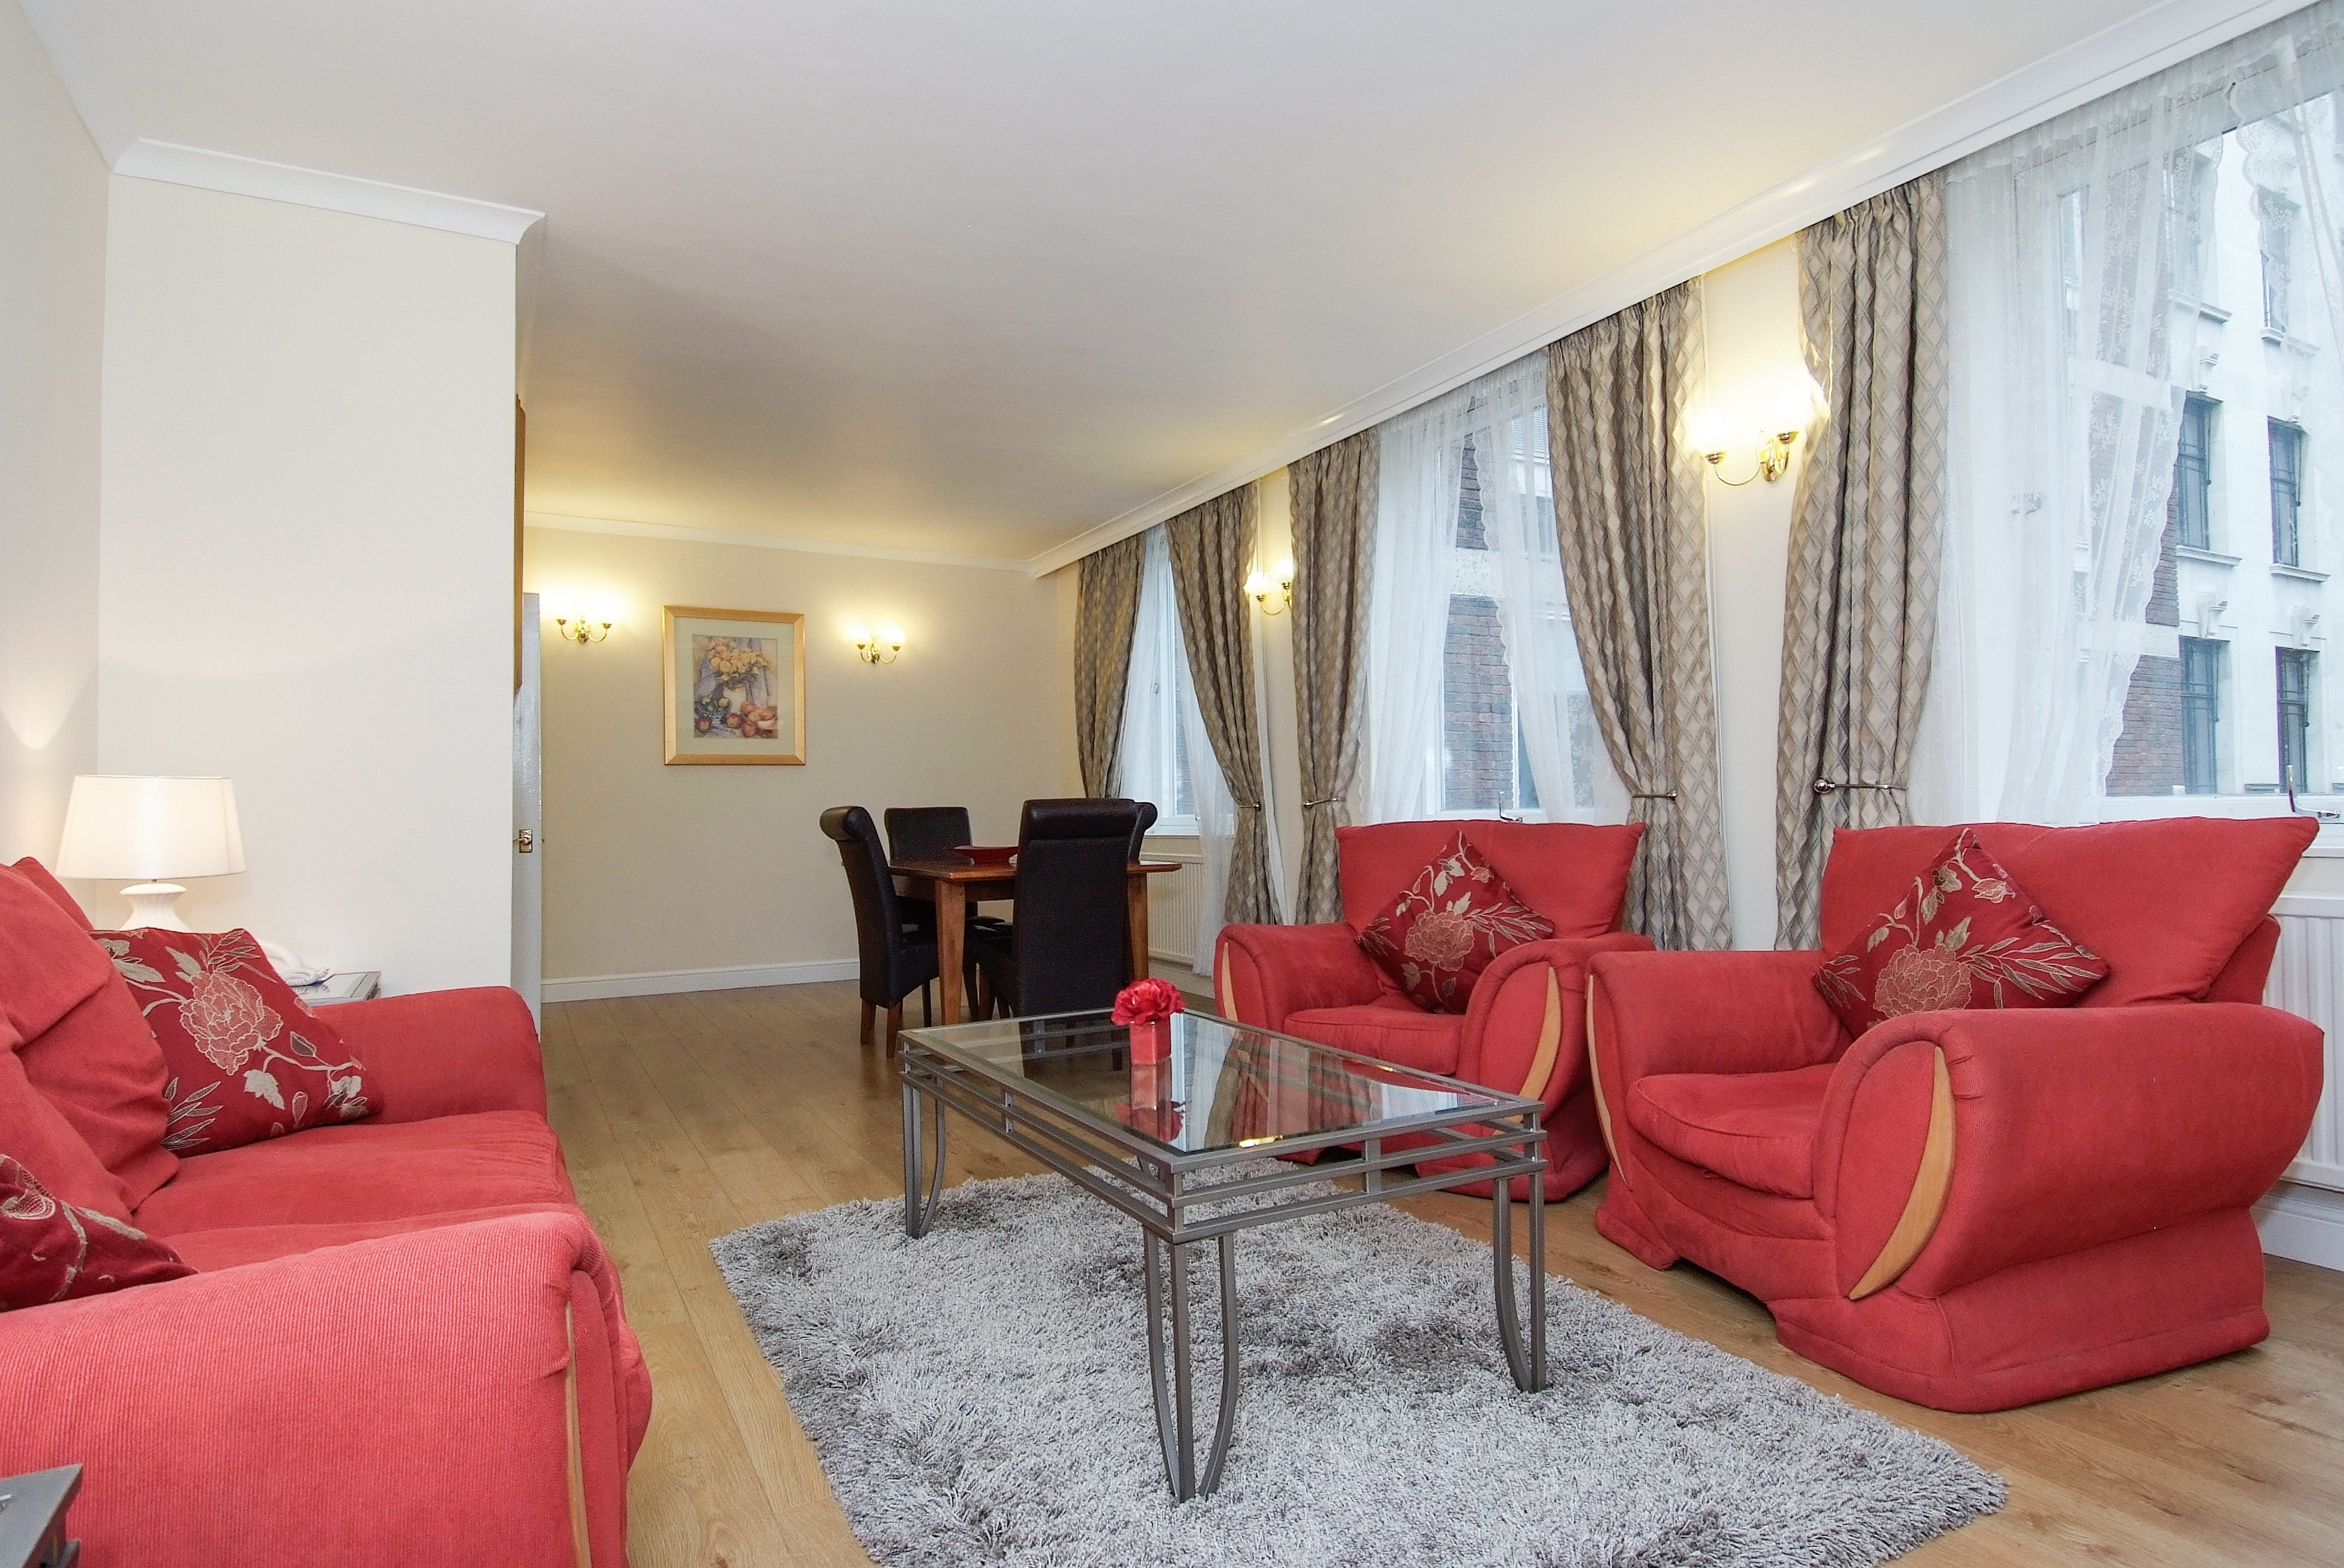 Best Soho Oxford Street 2 Bedroom Holiday Accommodation 2 With Pictures